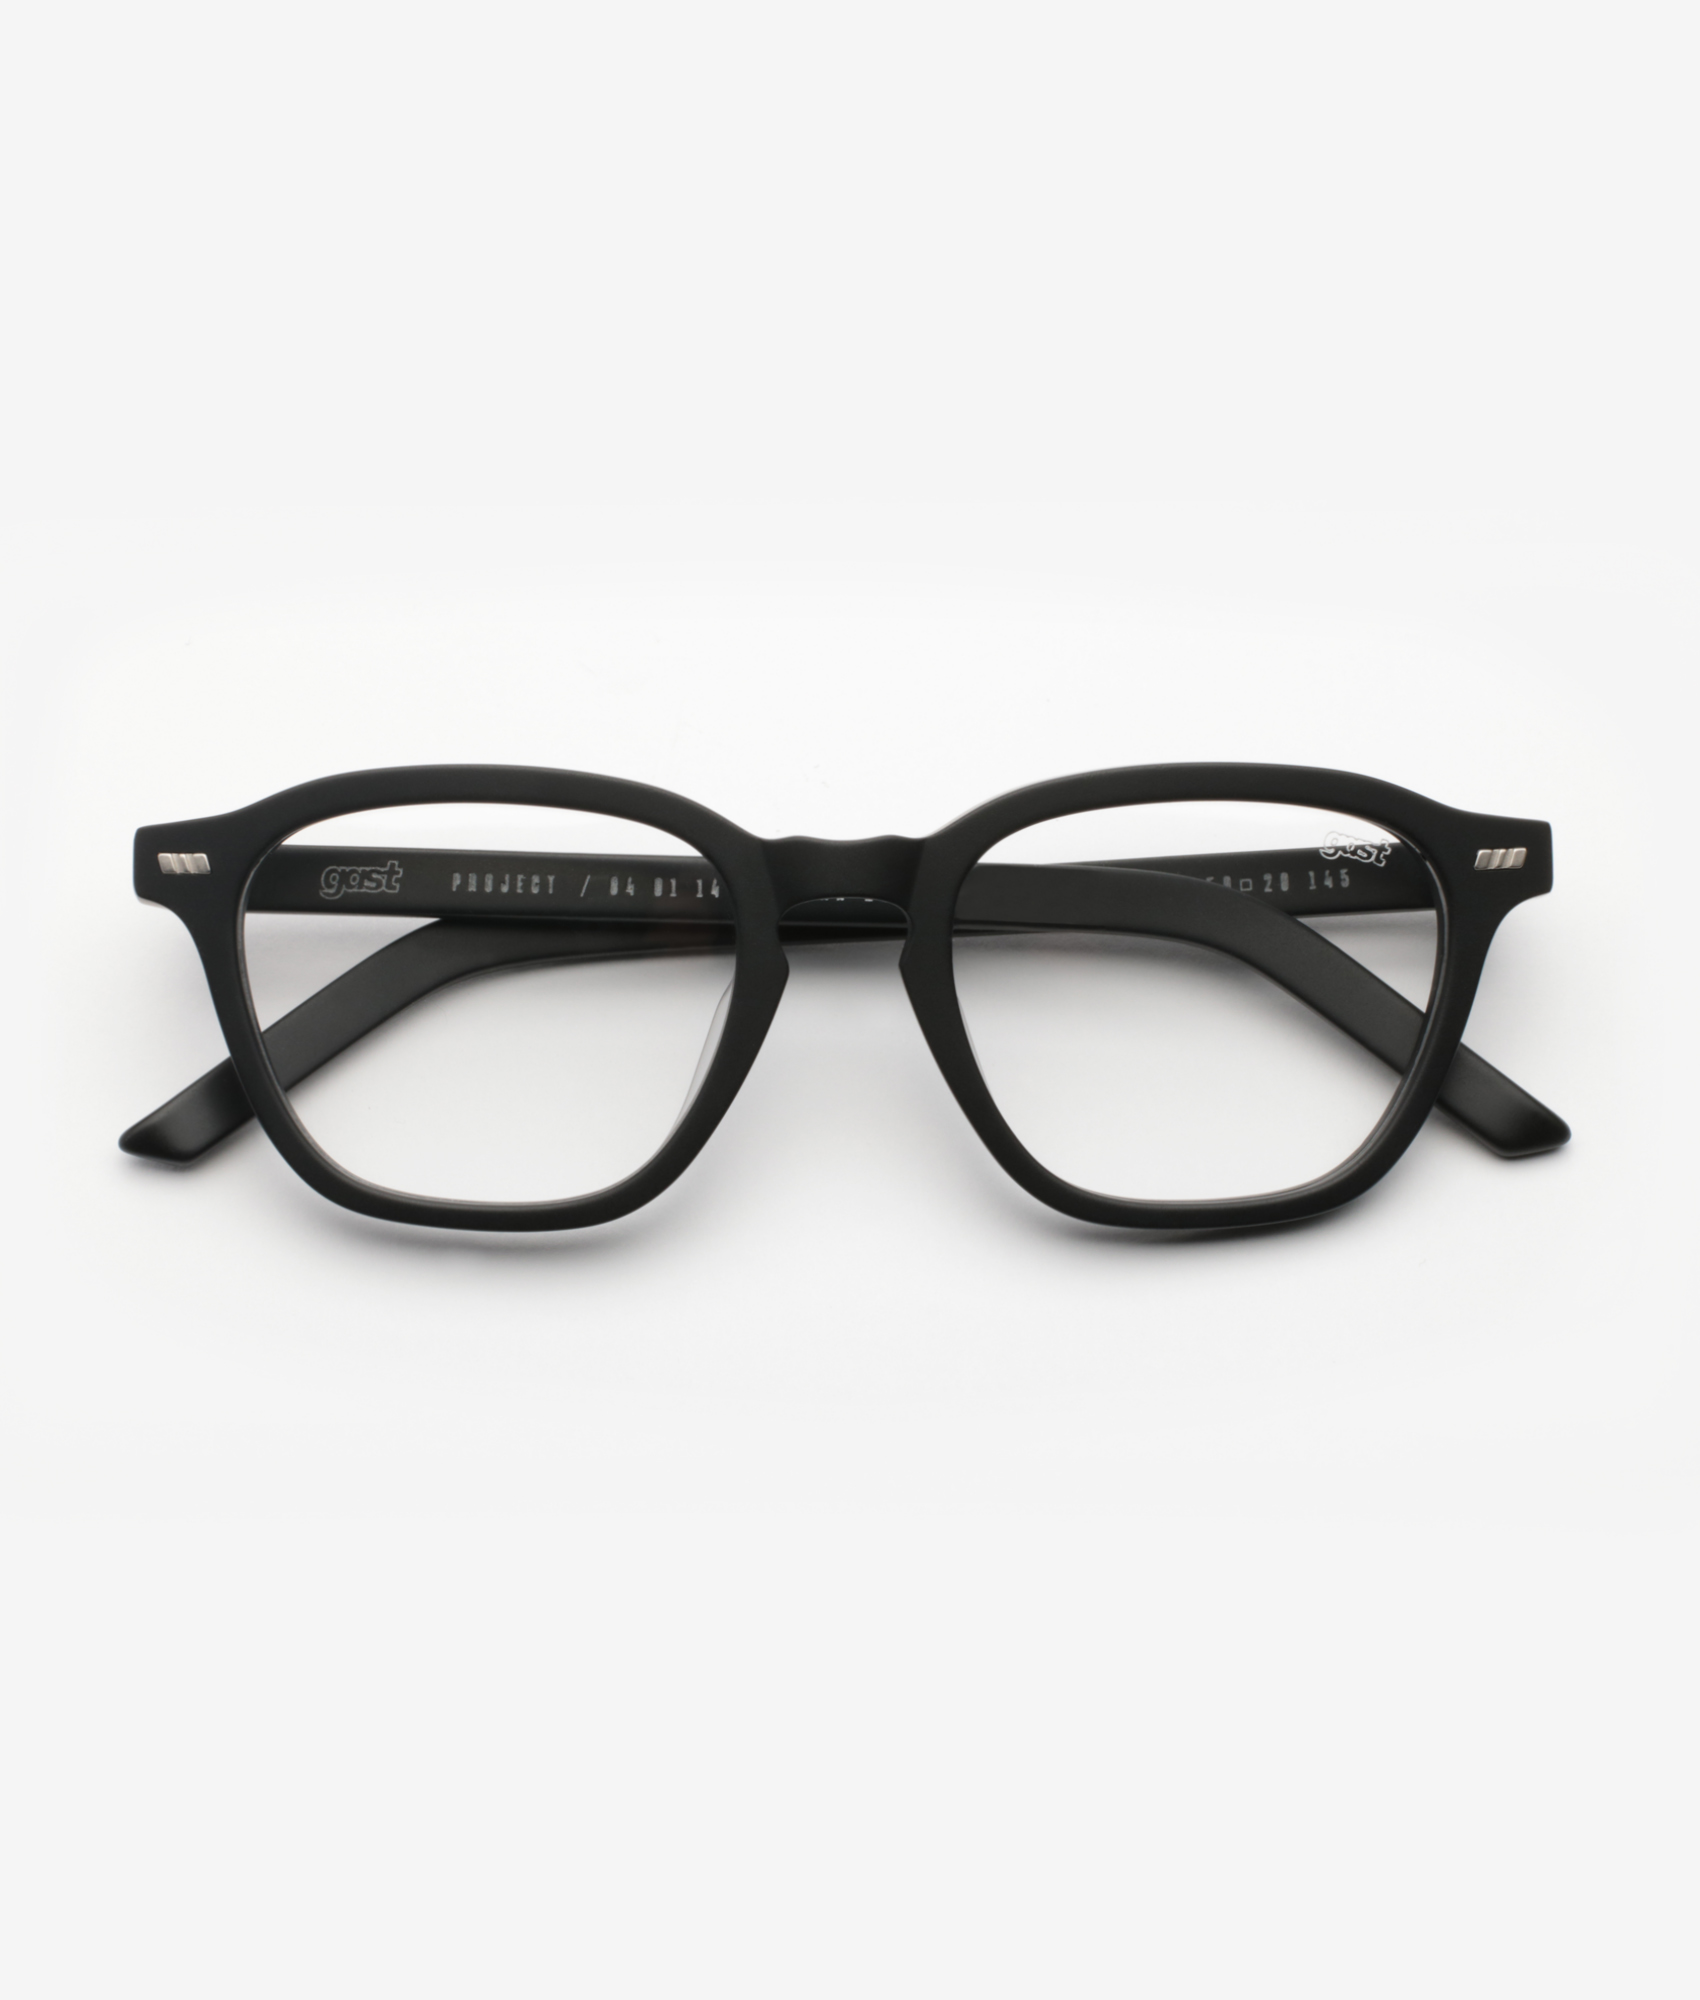 Galit Matte Black Optical Gast